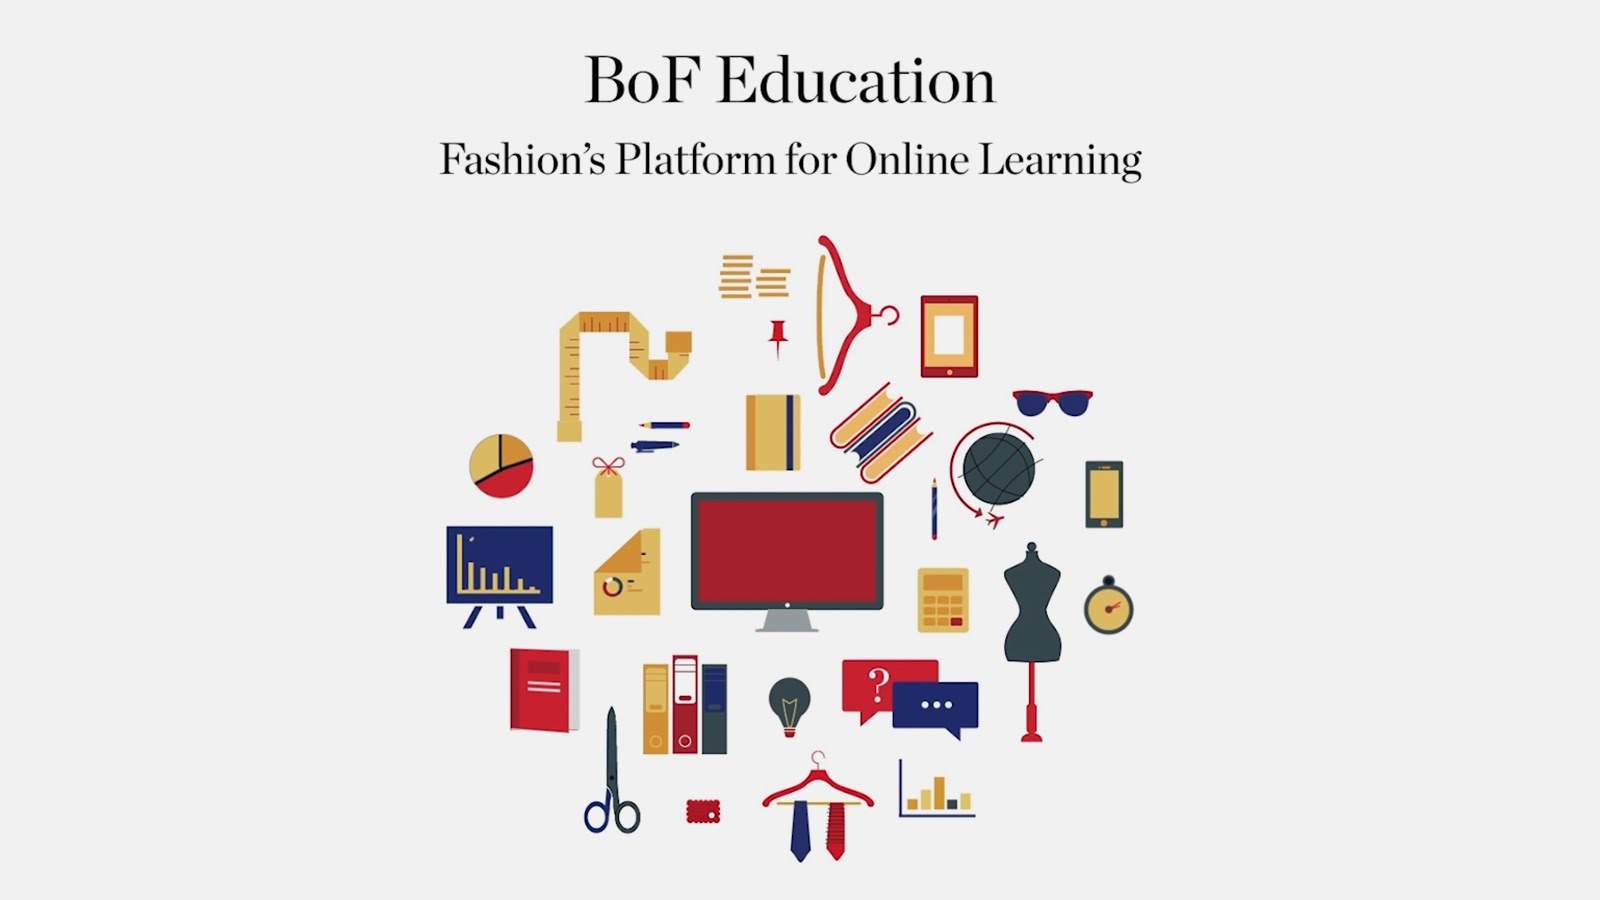 BoFEducation